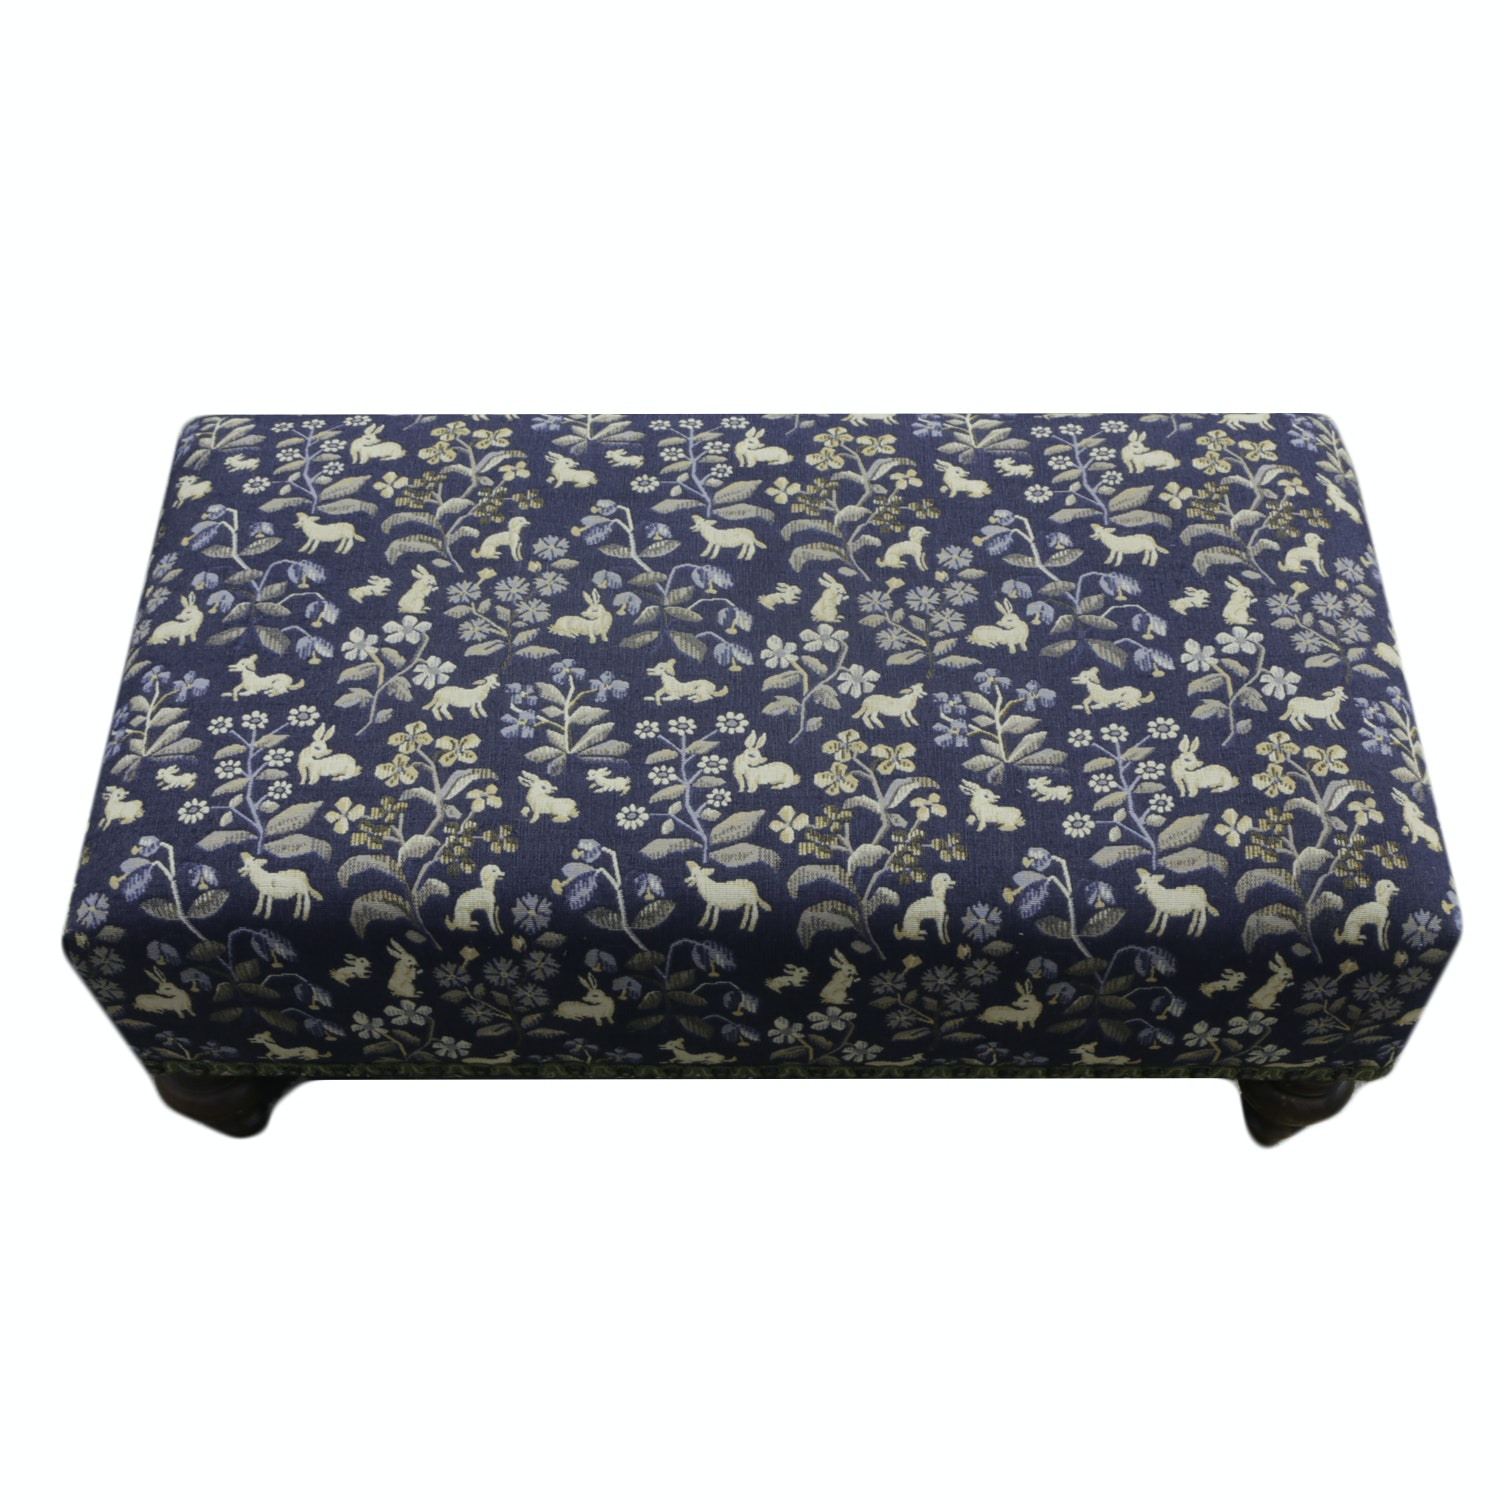 Vintage Upholstered Ottoman in Custom Fabric